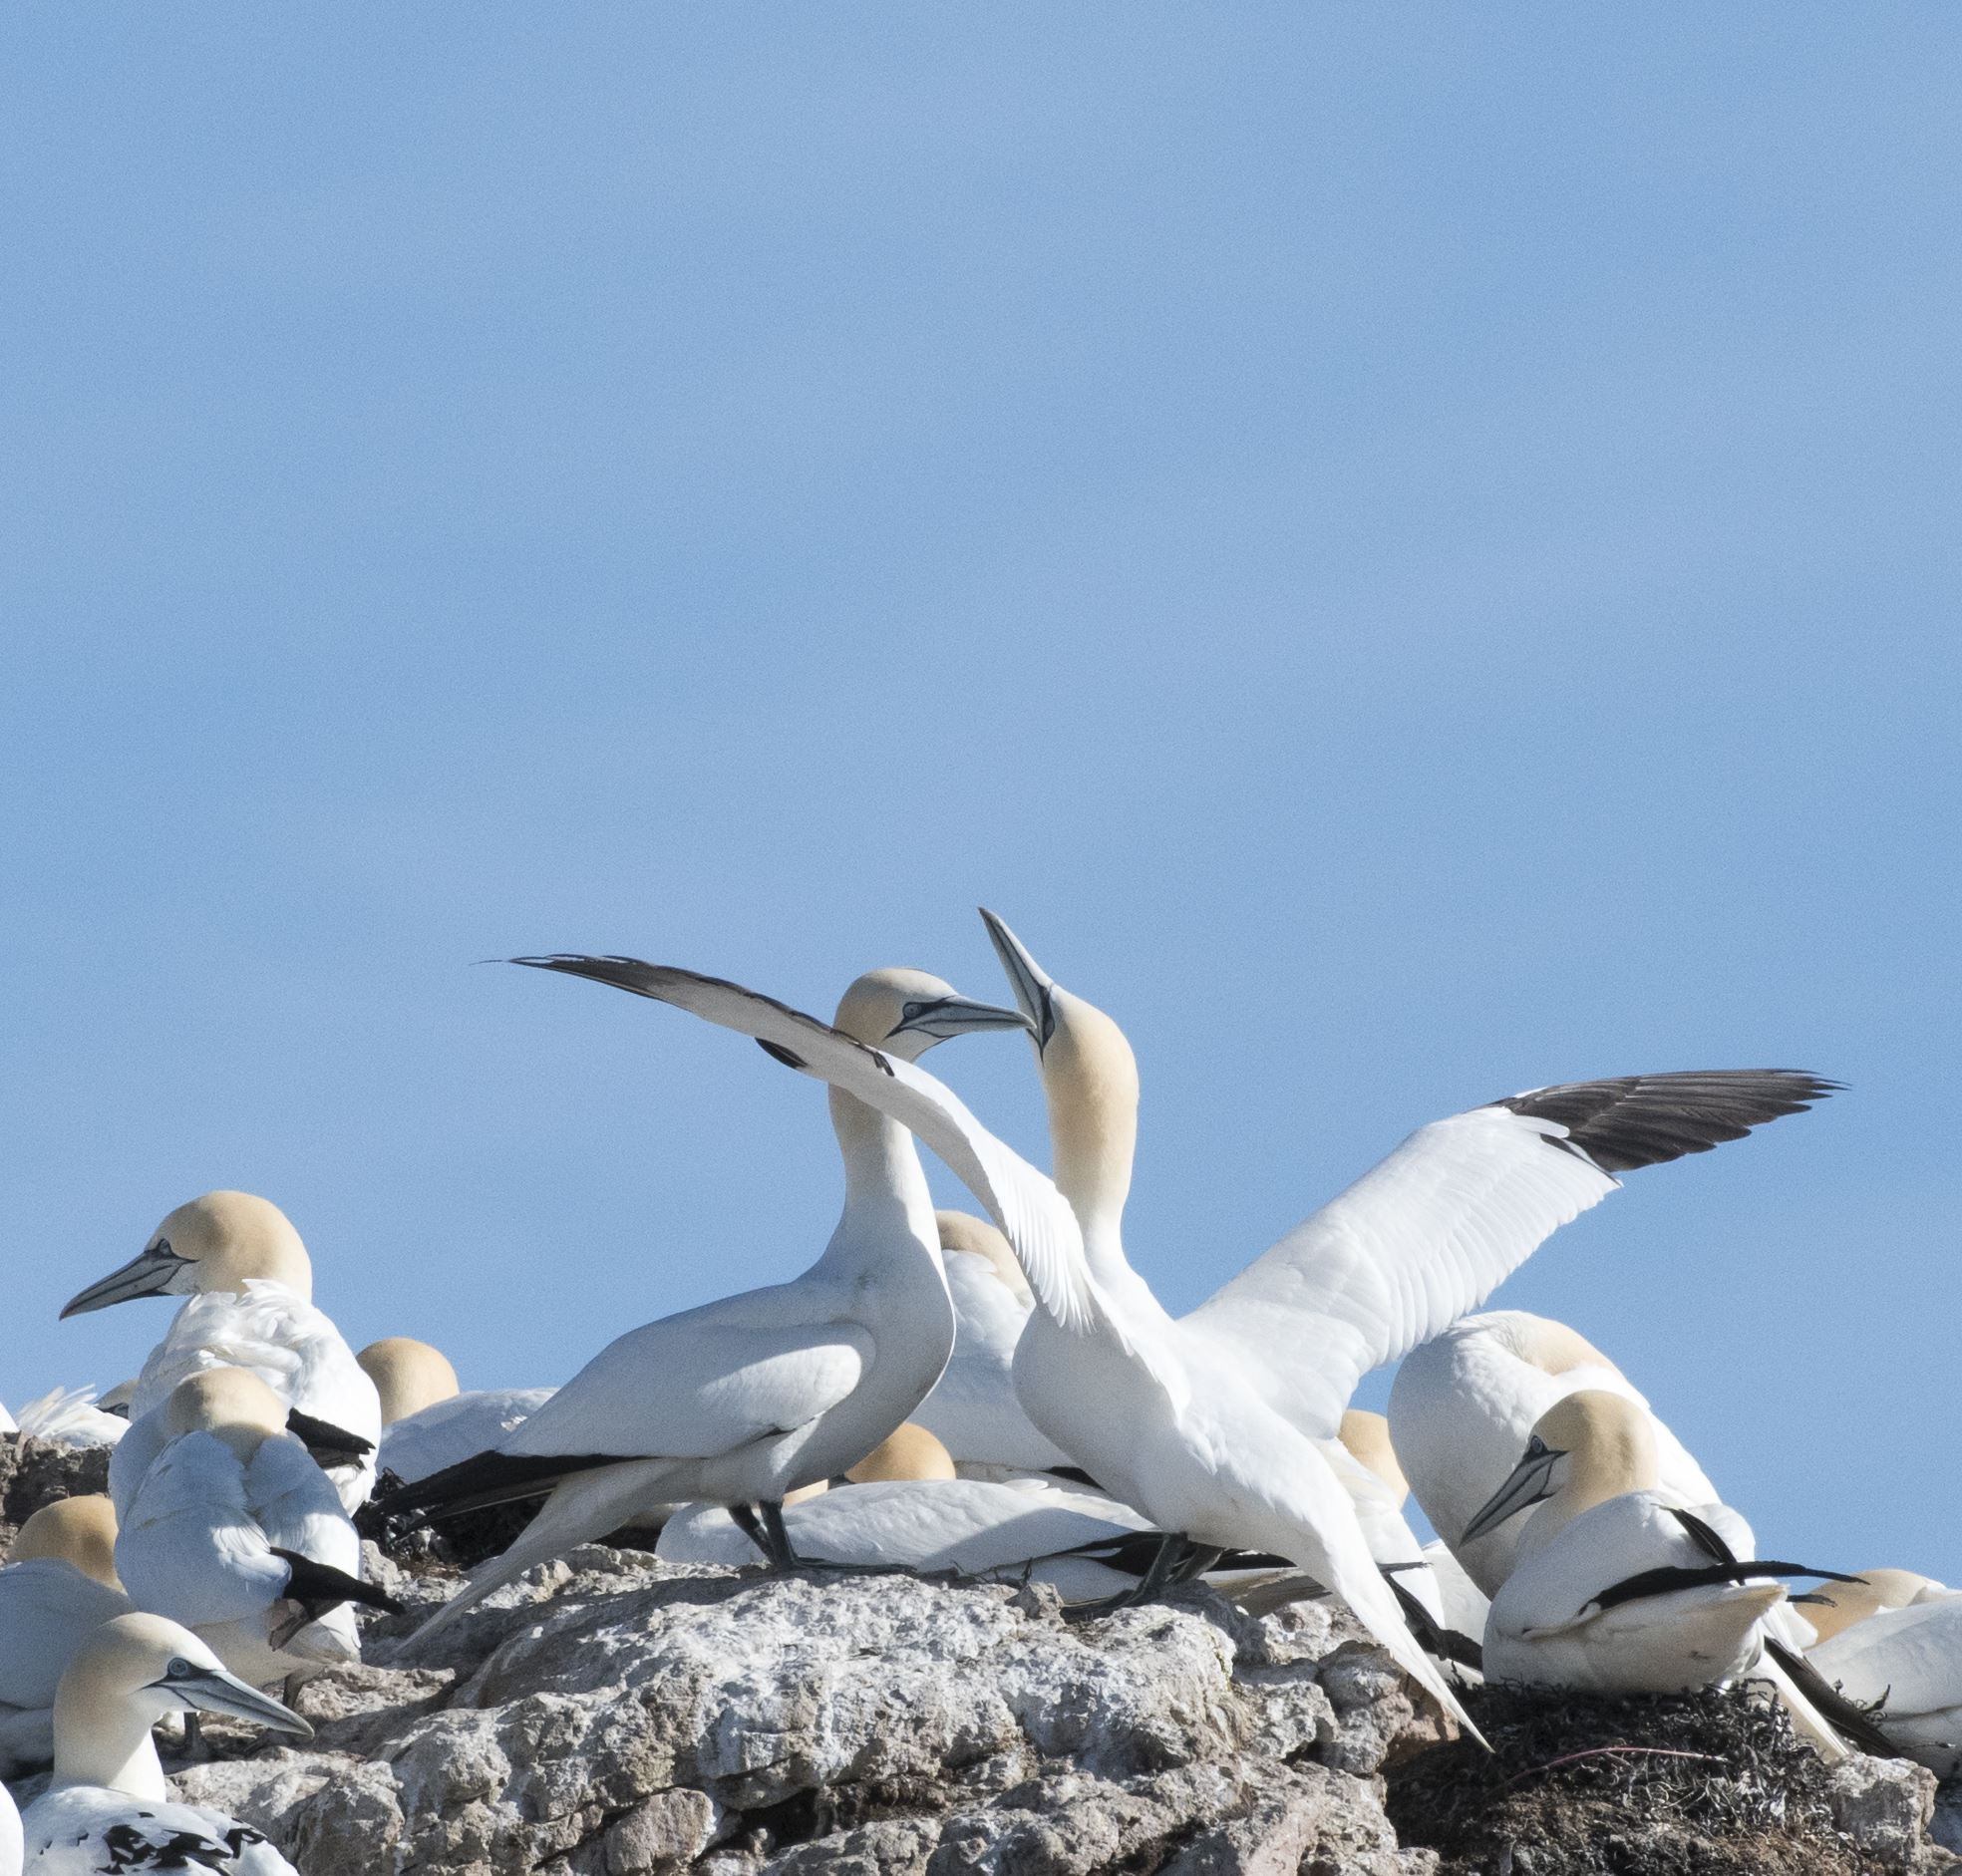 Bird Watching with Puffins, Eagles and Gannets